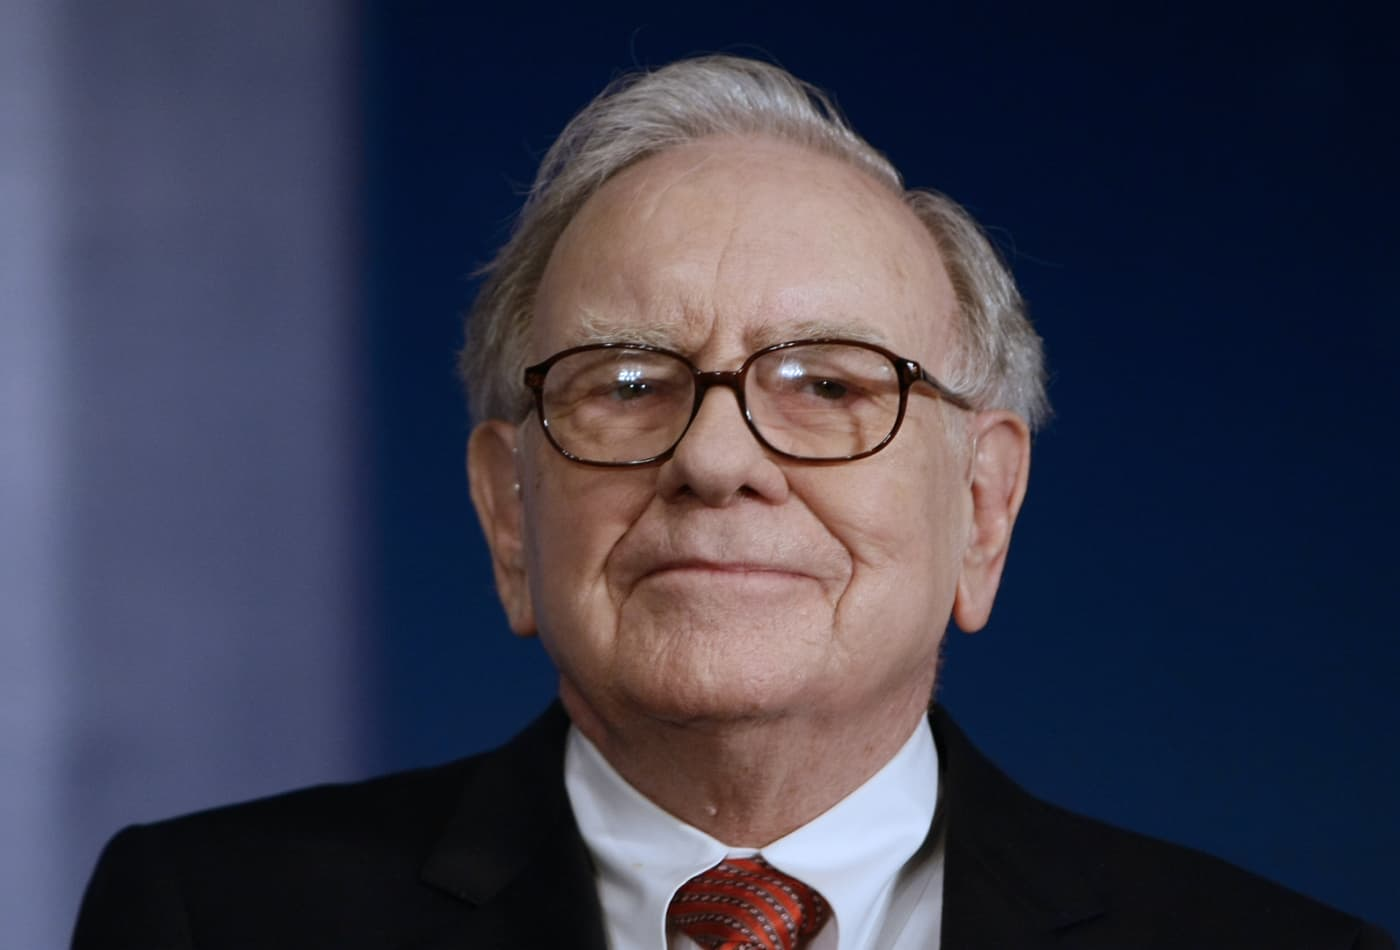 Warren Buffett calls this 'indispensable' life advice: 'You can always tell someone to go to hell tomorrow'